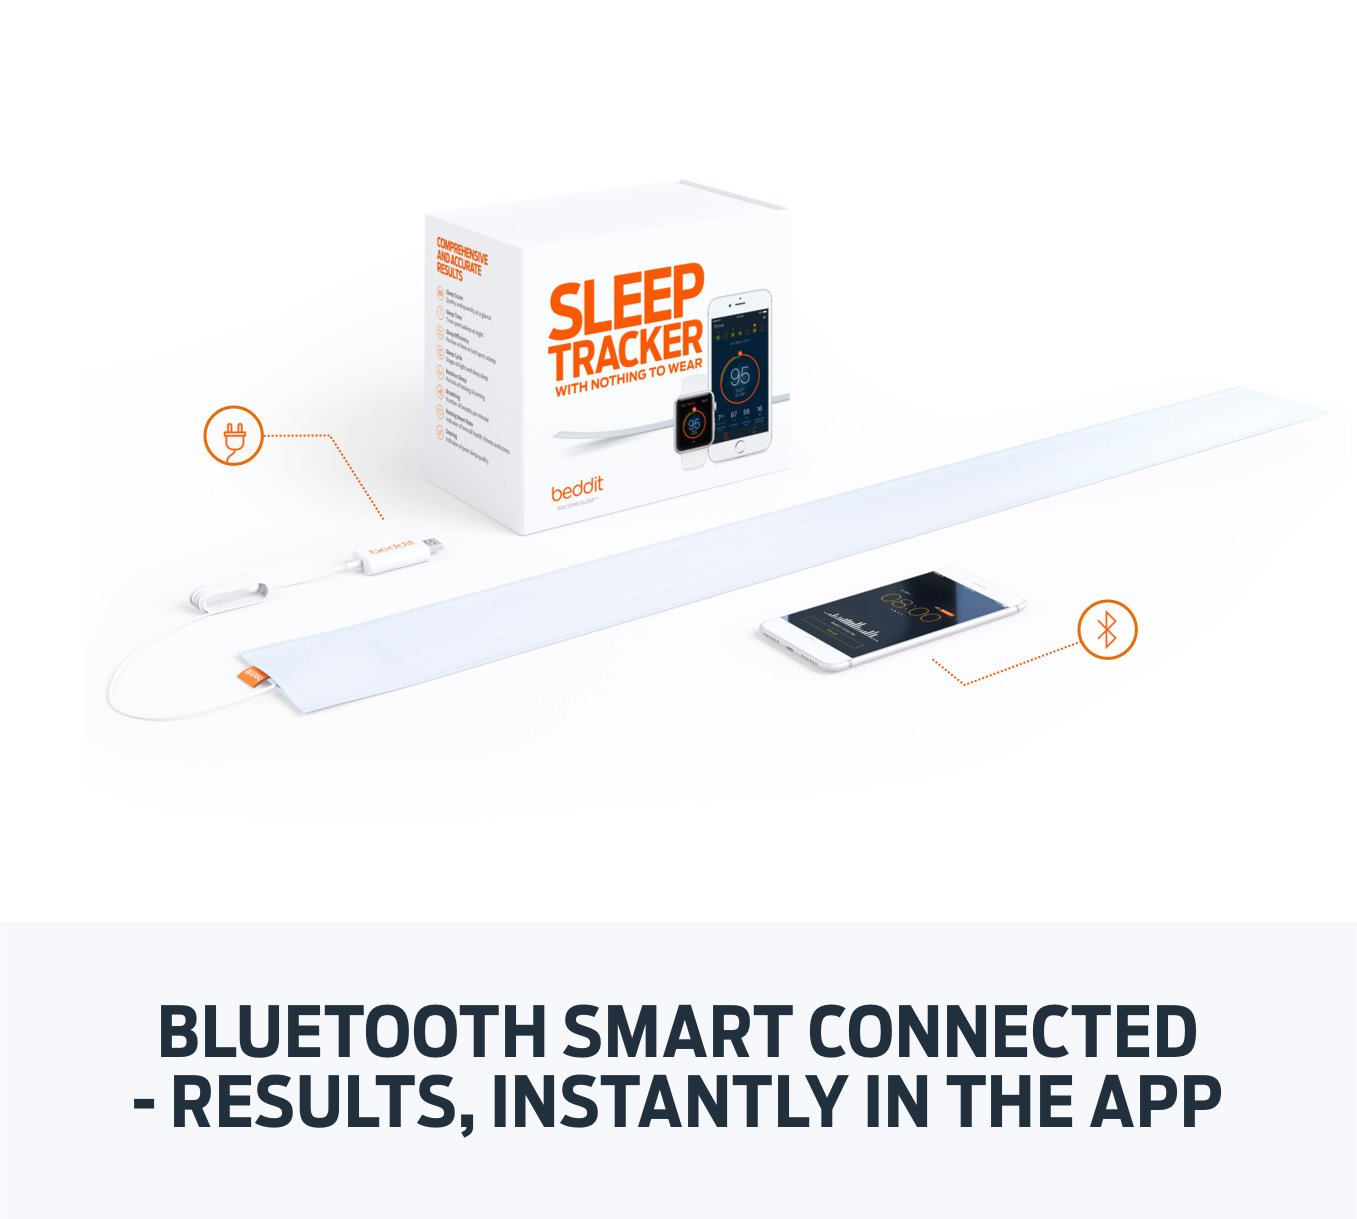 Beddit 3 Smart Sleep Tracker